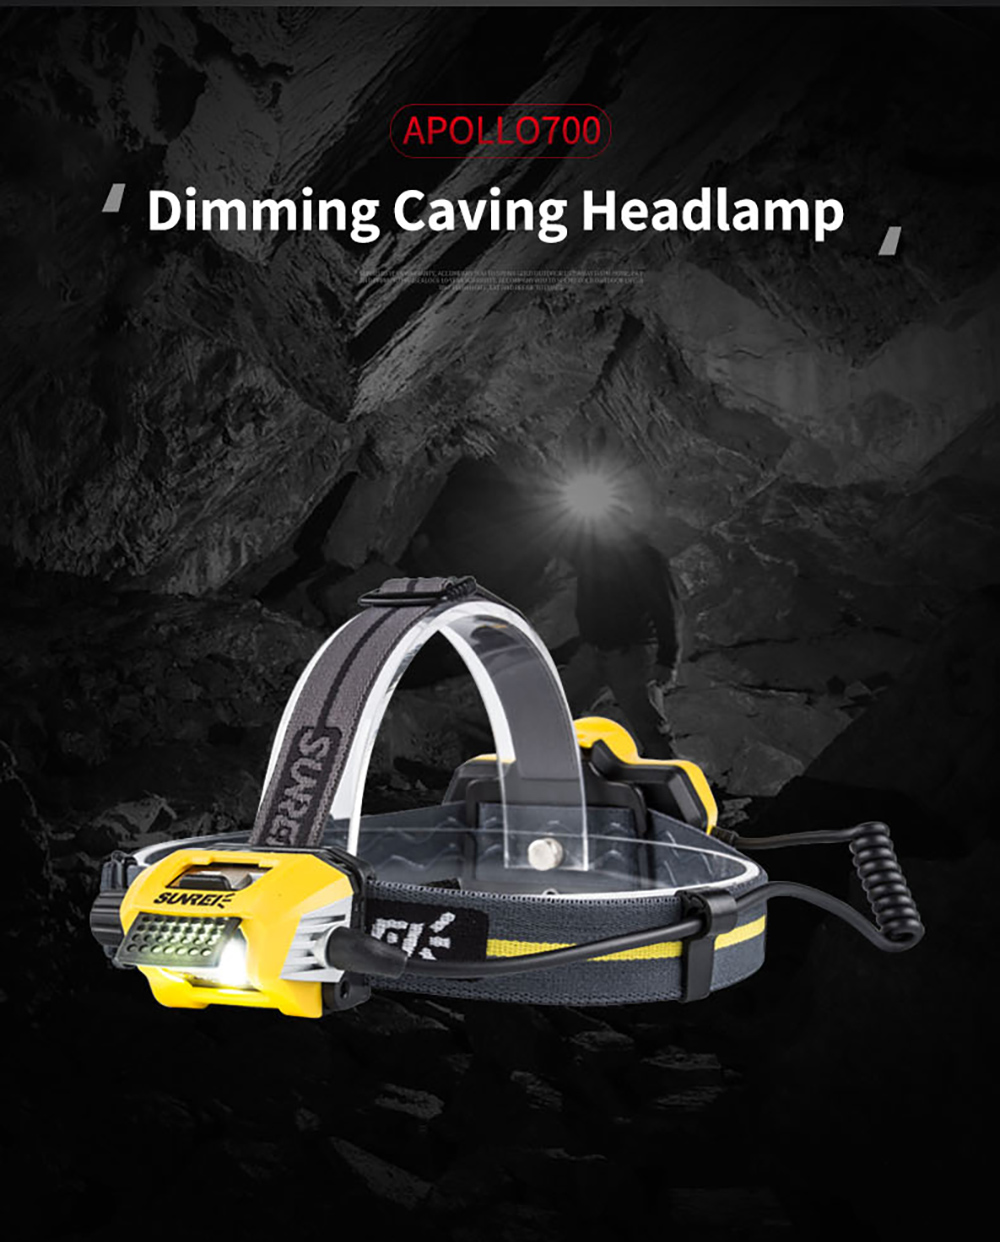 Outdoor rechargeable Headlamp: Apollo700 Caving Headlamp for Fishing/Climbing/Trakking/Hiking/Camping/venture/SOS, IPX6